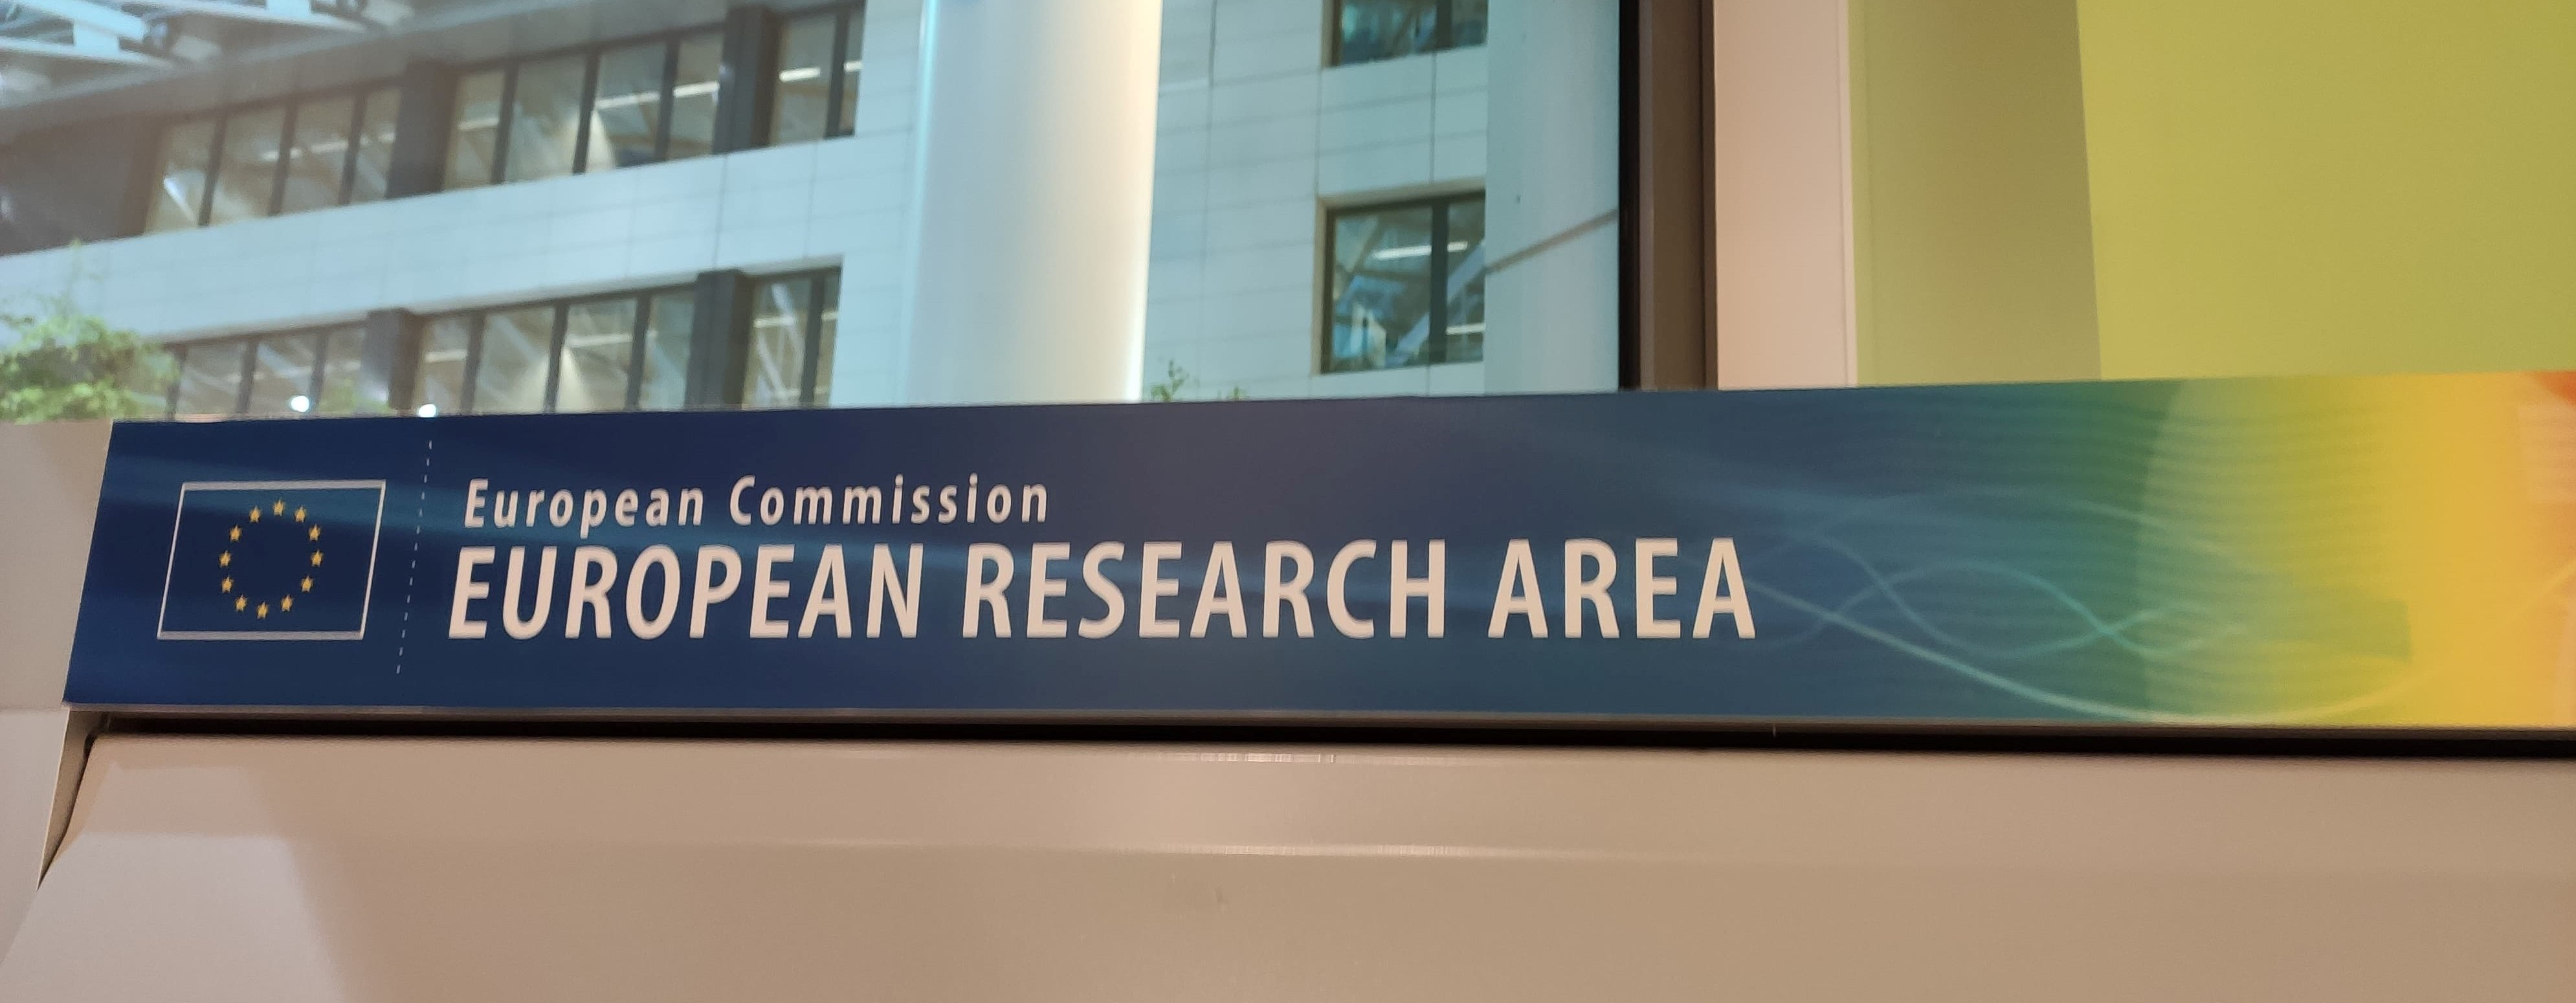 European Commission, European Research Area